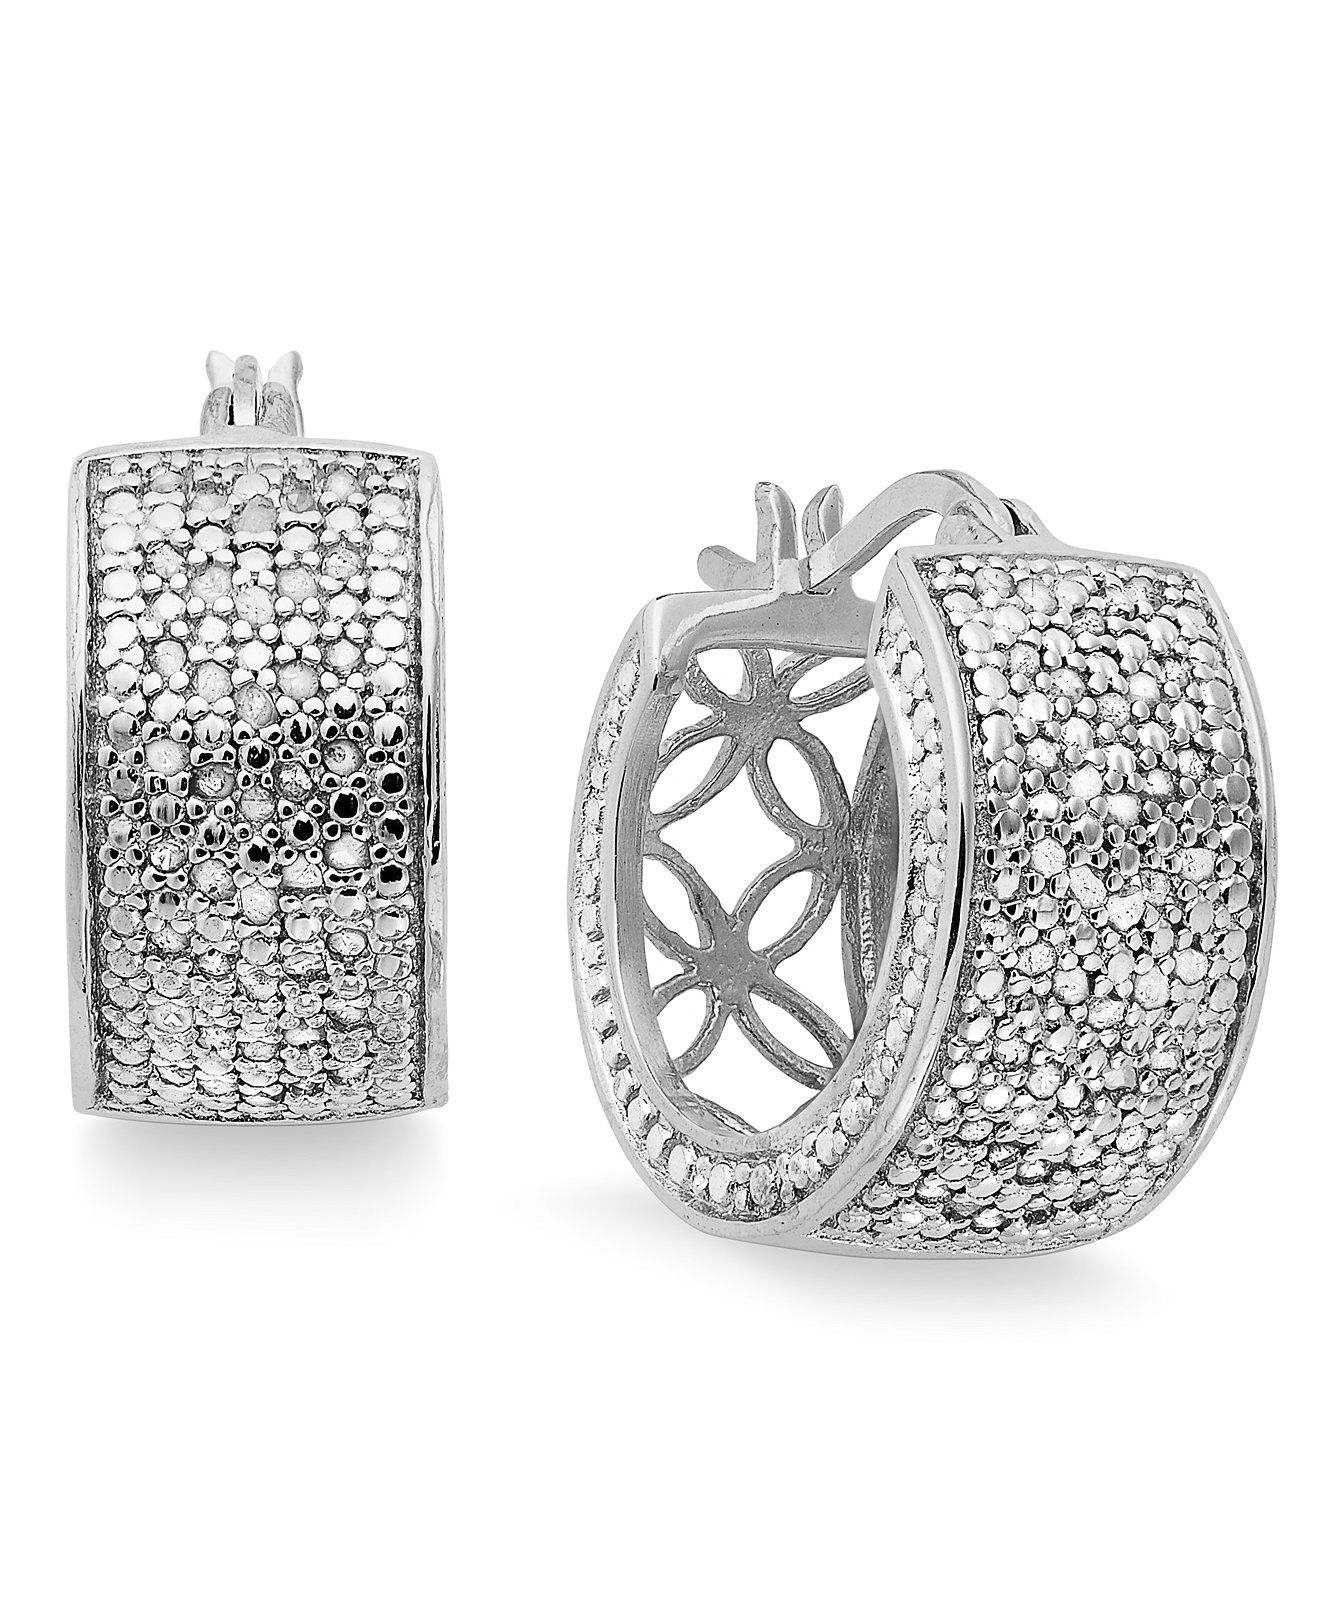 b7f27e7fe Victoria Townsend Small Rose-Cut Diamond Hoop Earrings in Sterling Silver  (1/2 ct. t.w.) - Silver - Jewelry & Watches - Macy's